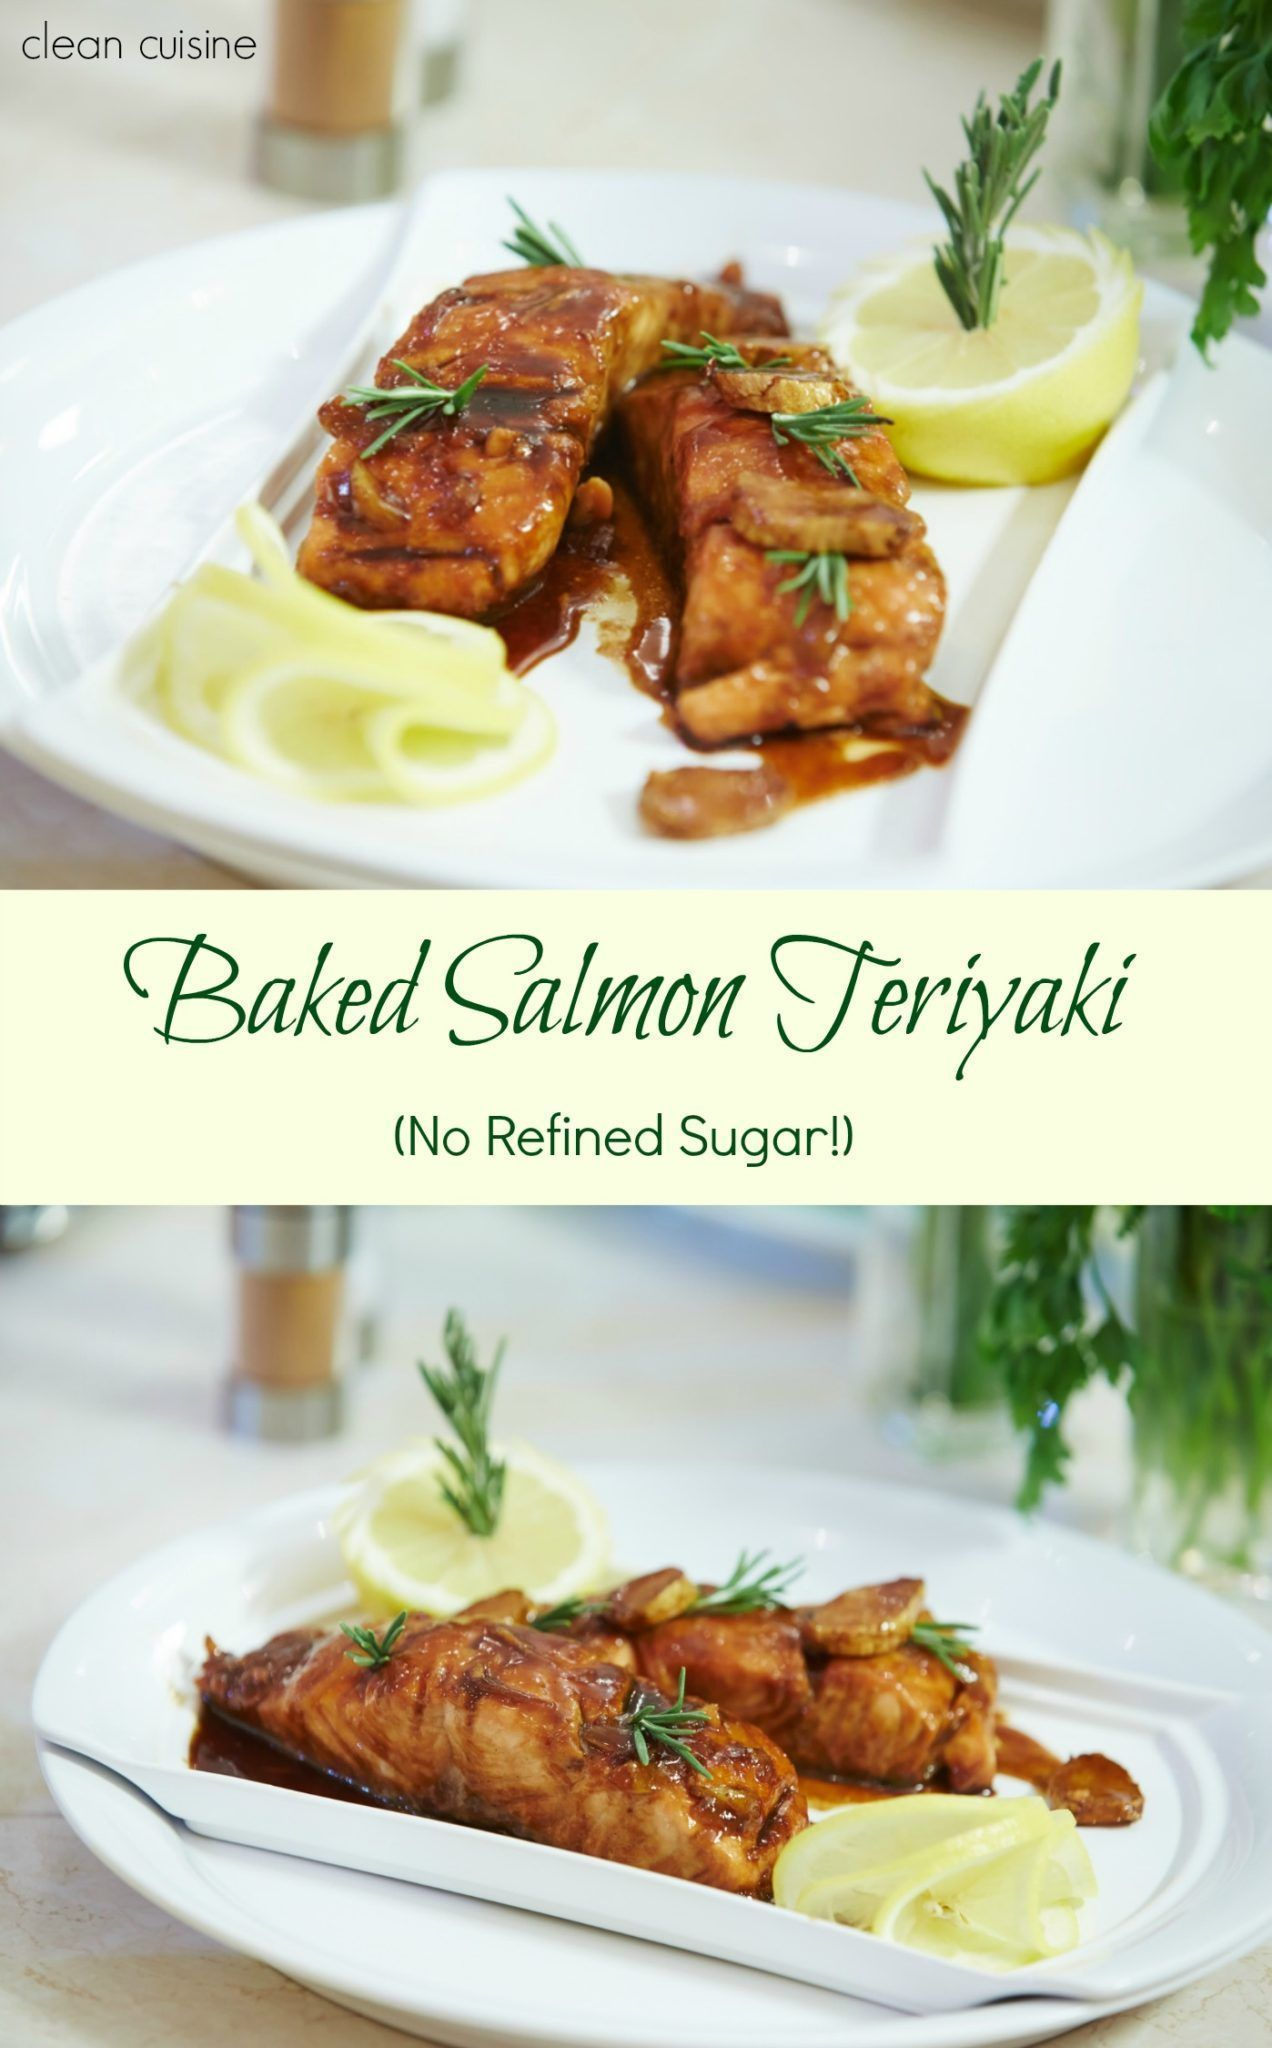 Baked Salmon Teriyaki Recipe (No Refined Sugar!) #salmonteriyaki Baked Salmon Teriyaki---Clean Cuisine #teriyakisalmon Baked Salmon Teriyaki Recipe (No Refined Sugar!) #salmonteriyaki Baked Salmon Teriyaki---Clean Cuisine #salmonteriyaki Baked Salmon Teriyaki Recipe (No Refined Sugar!) #salmonteriyaki Baked Salmon Teriyaki---Clean Cuisine #teriyakisalmon Baked Salmon Teriyaki Recipe (No Refined Sugar!) #salmonteriyaki Baked Salmon Teriyaki---Clean Cuisine #teriyakisalmon